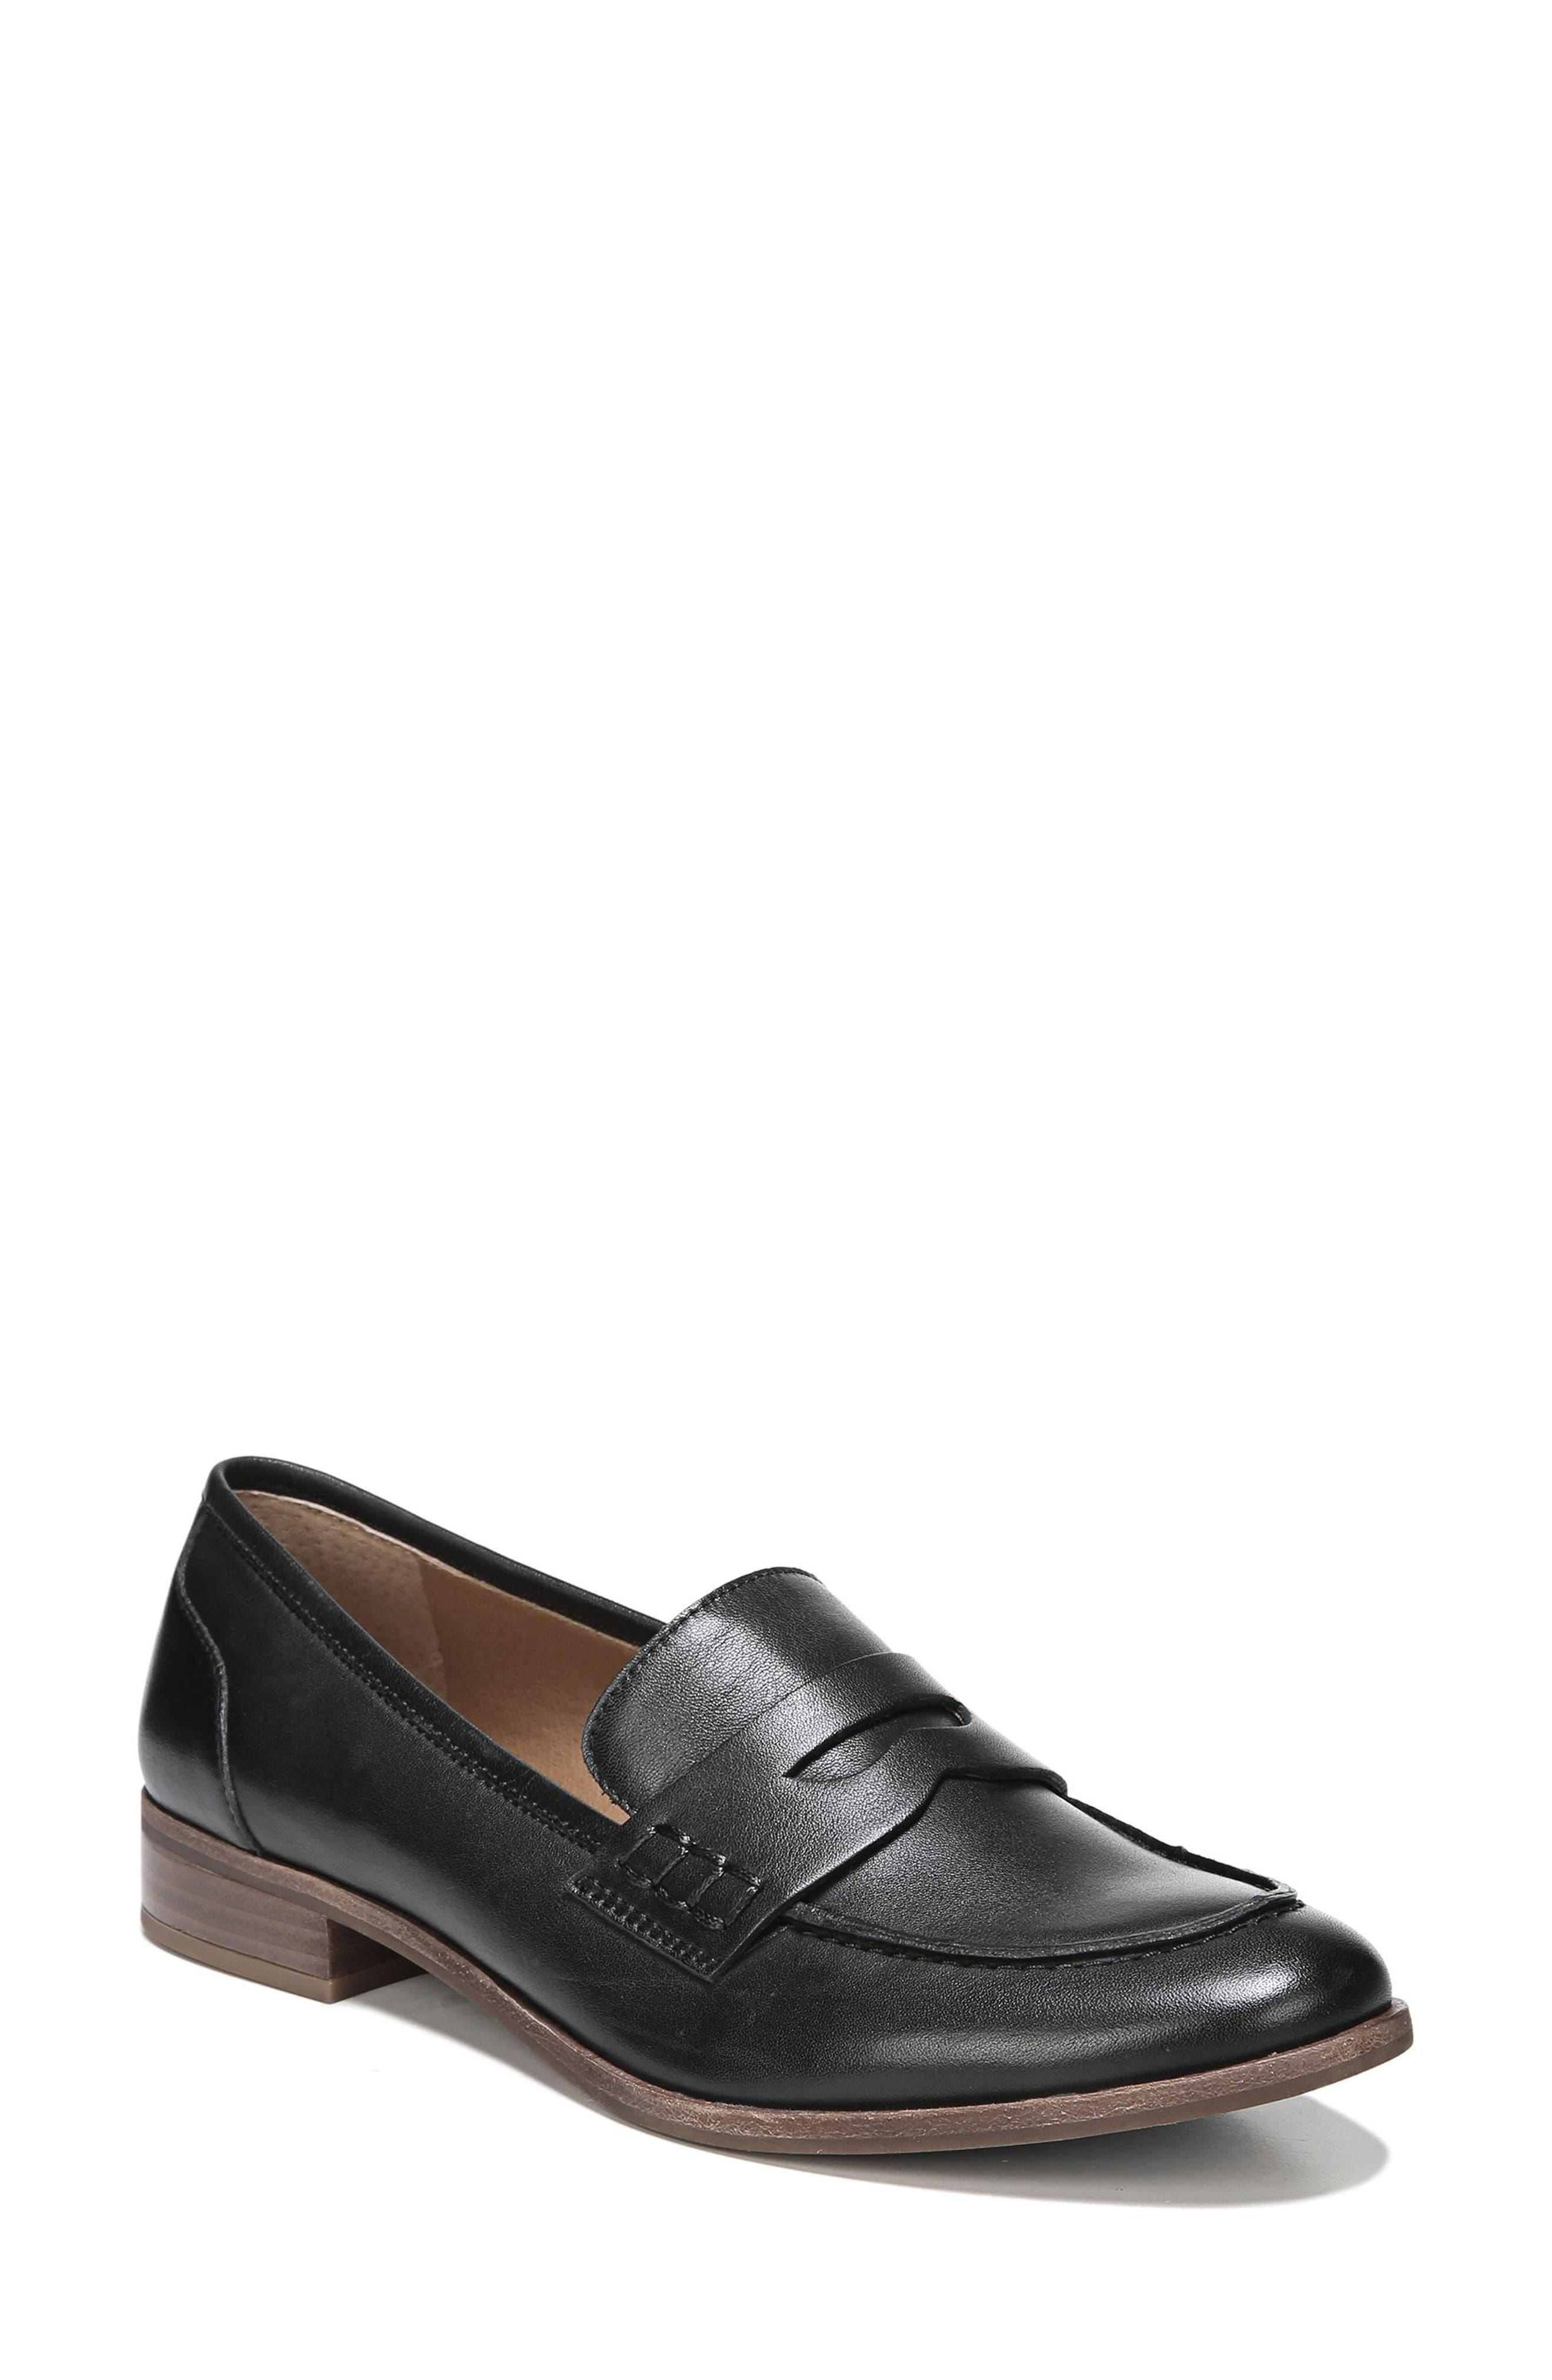 'Jolette' Penny Loafer,                             Main thumbnail 1, color,